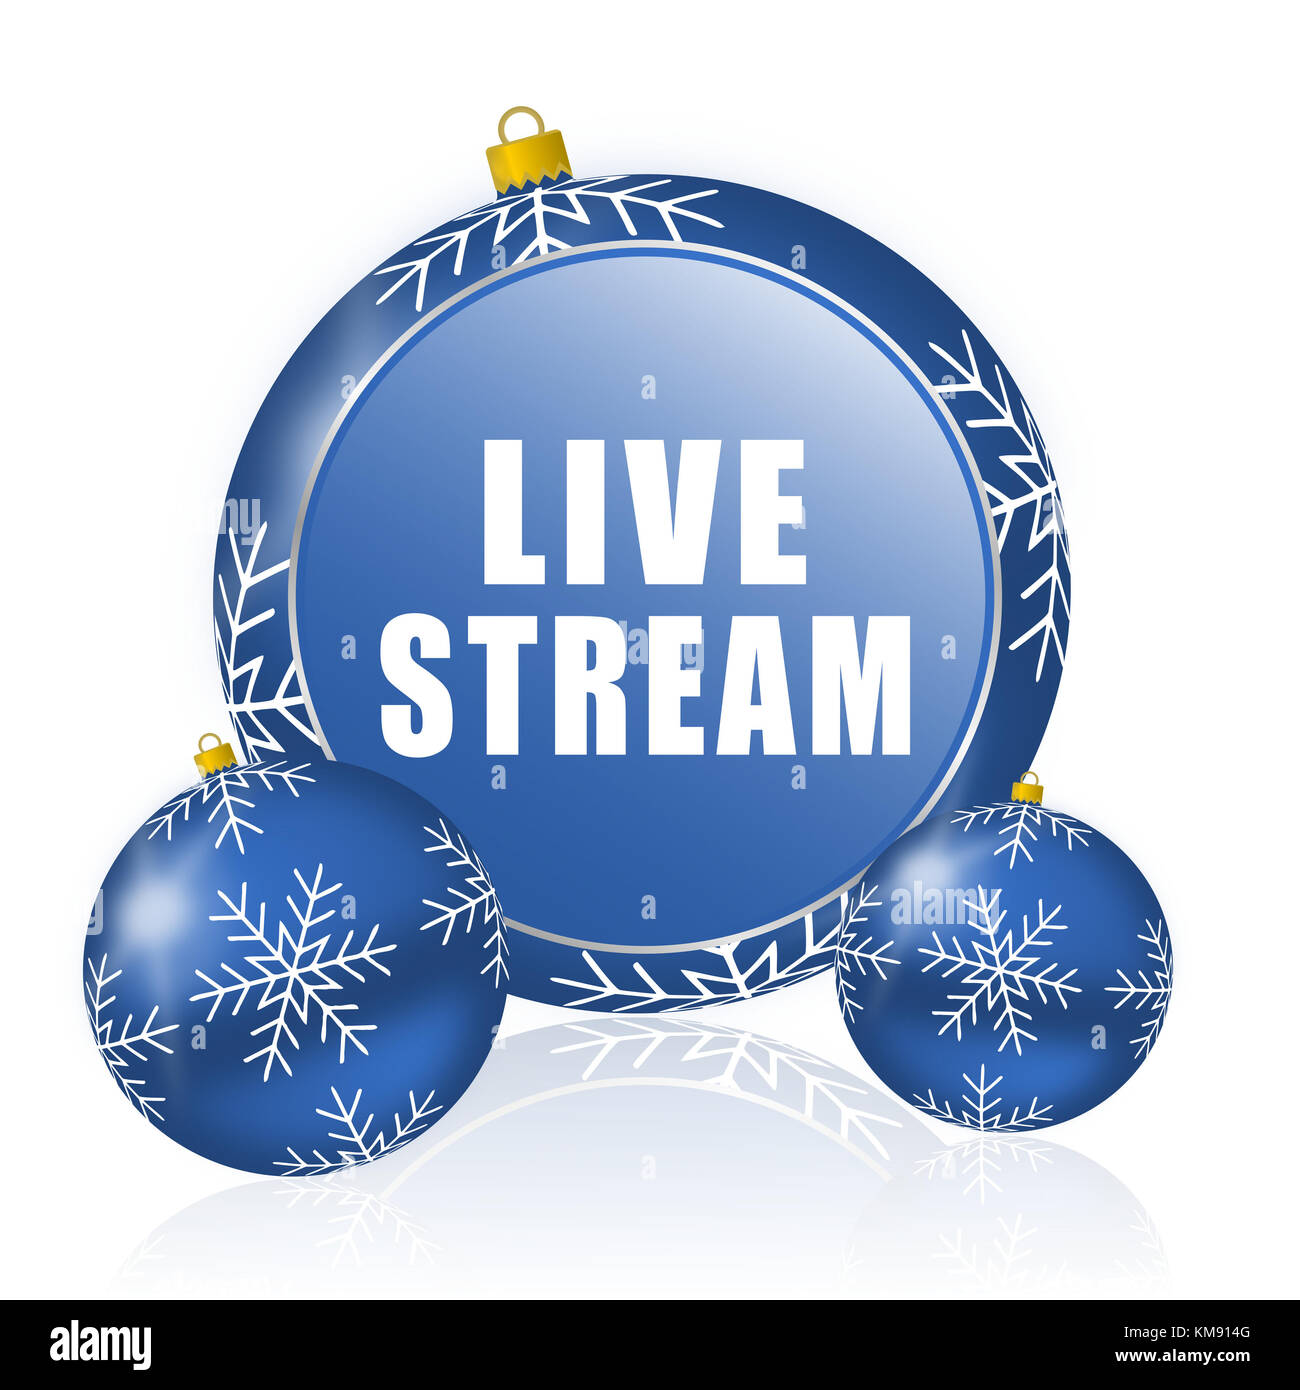 Live stream blue christmas balls icon - Stock Image